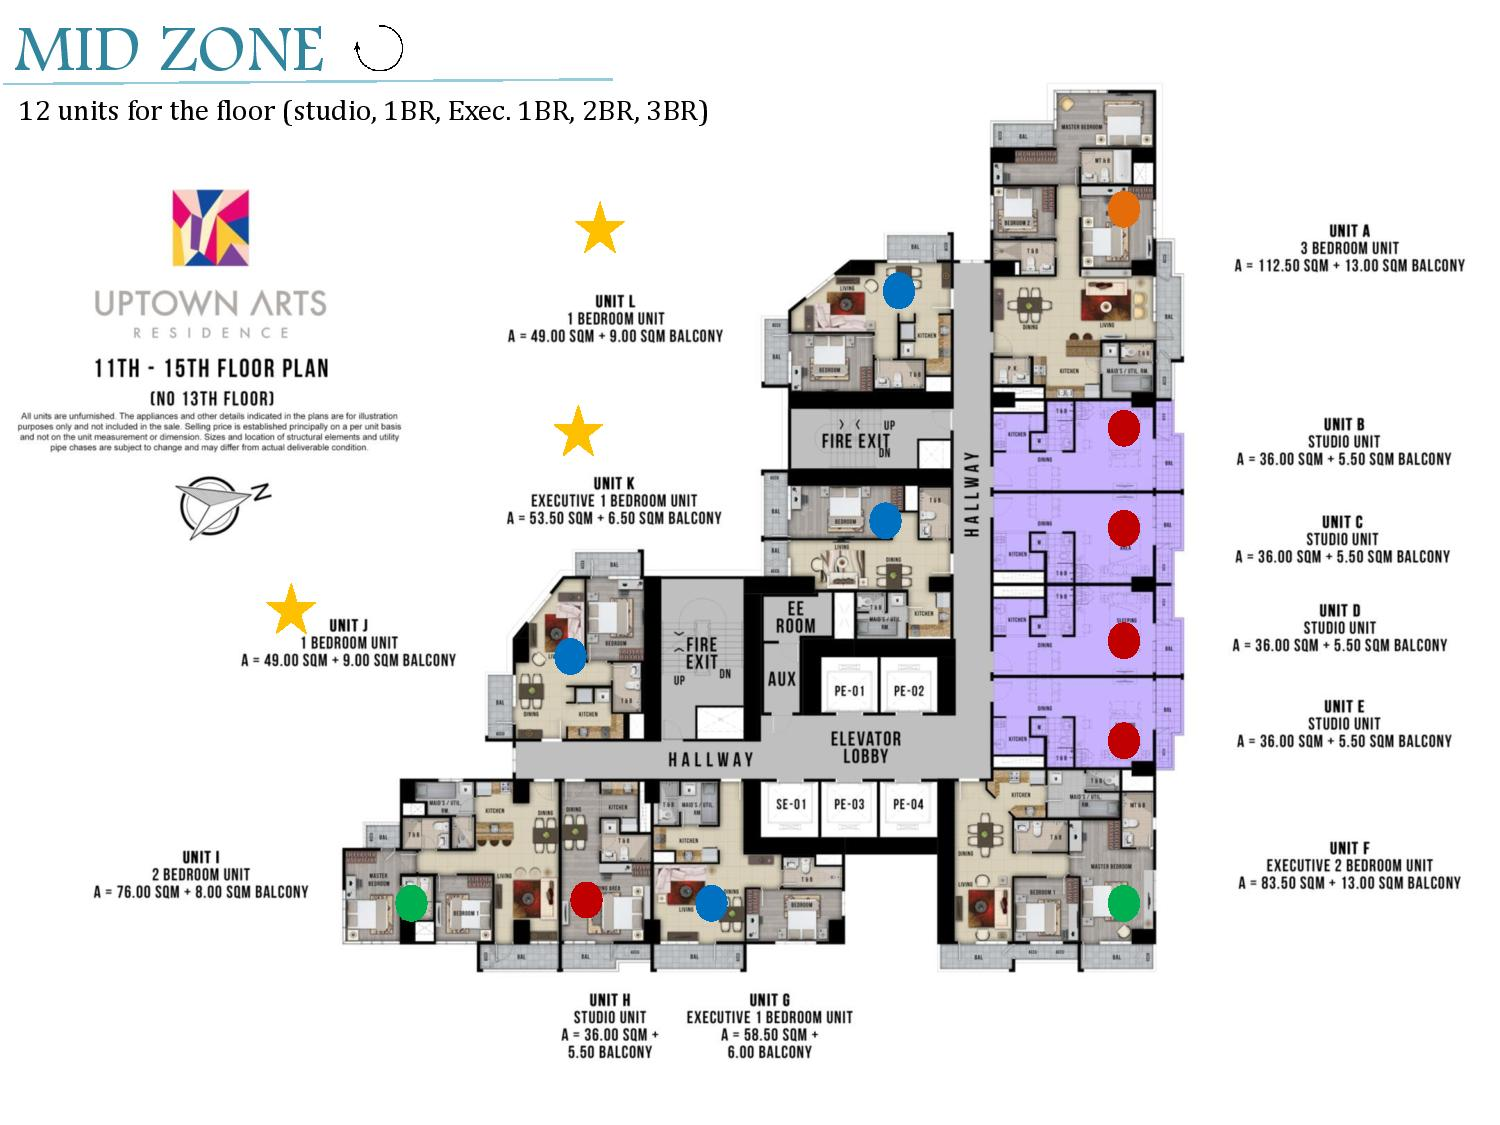 midzone floor plan Uptown Arts Residence  Preselling Condo For Sale in Bonifacio Global City BGC